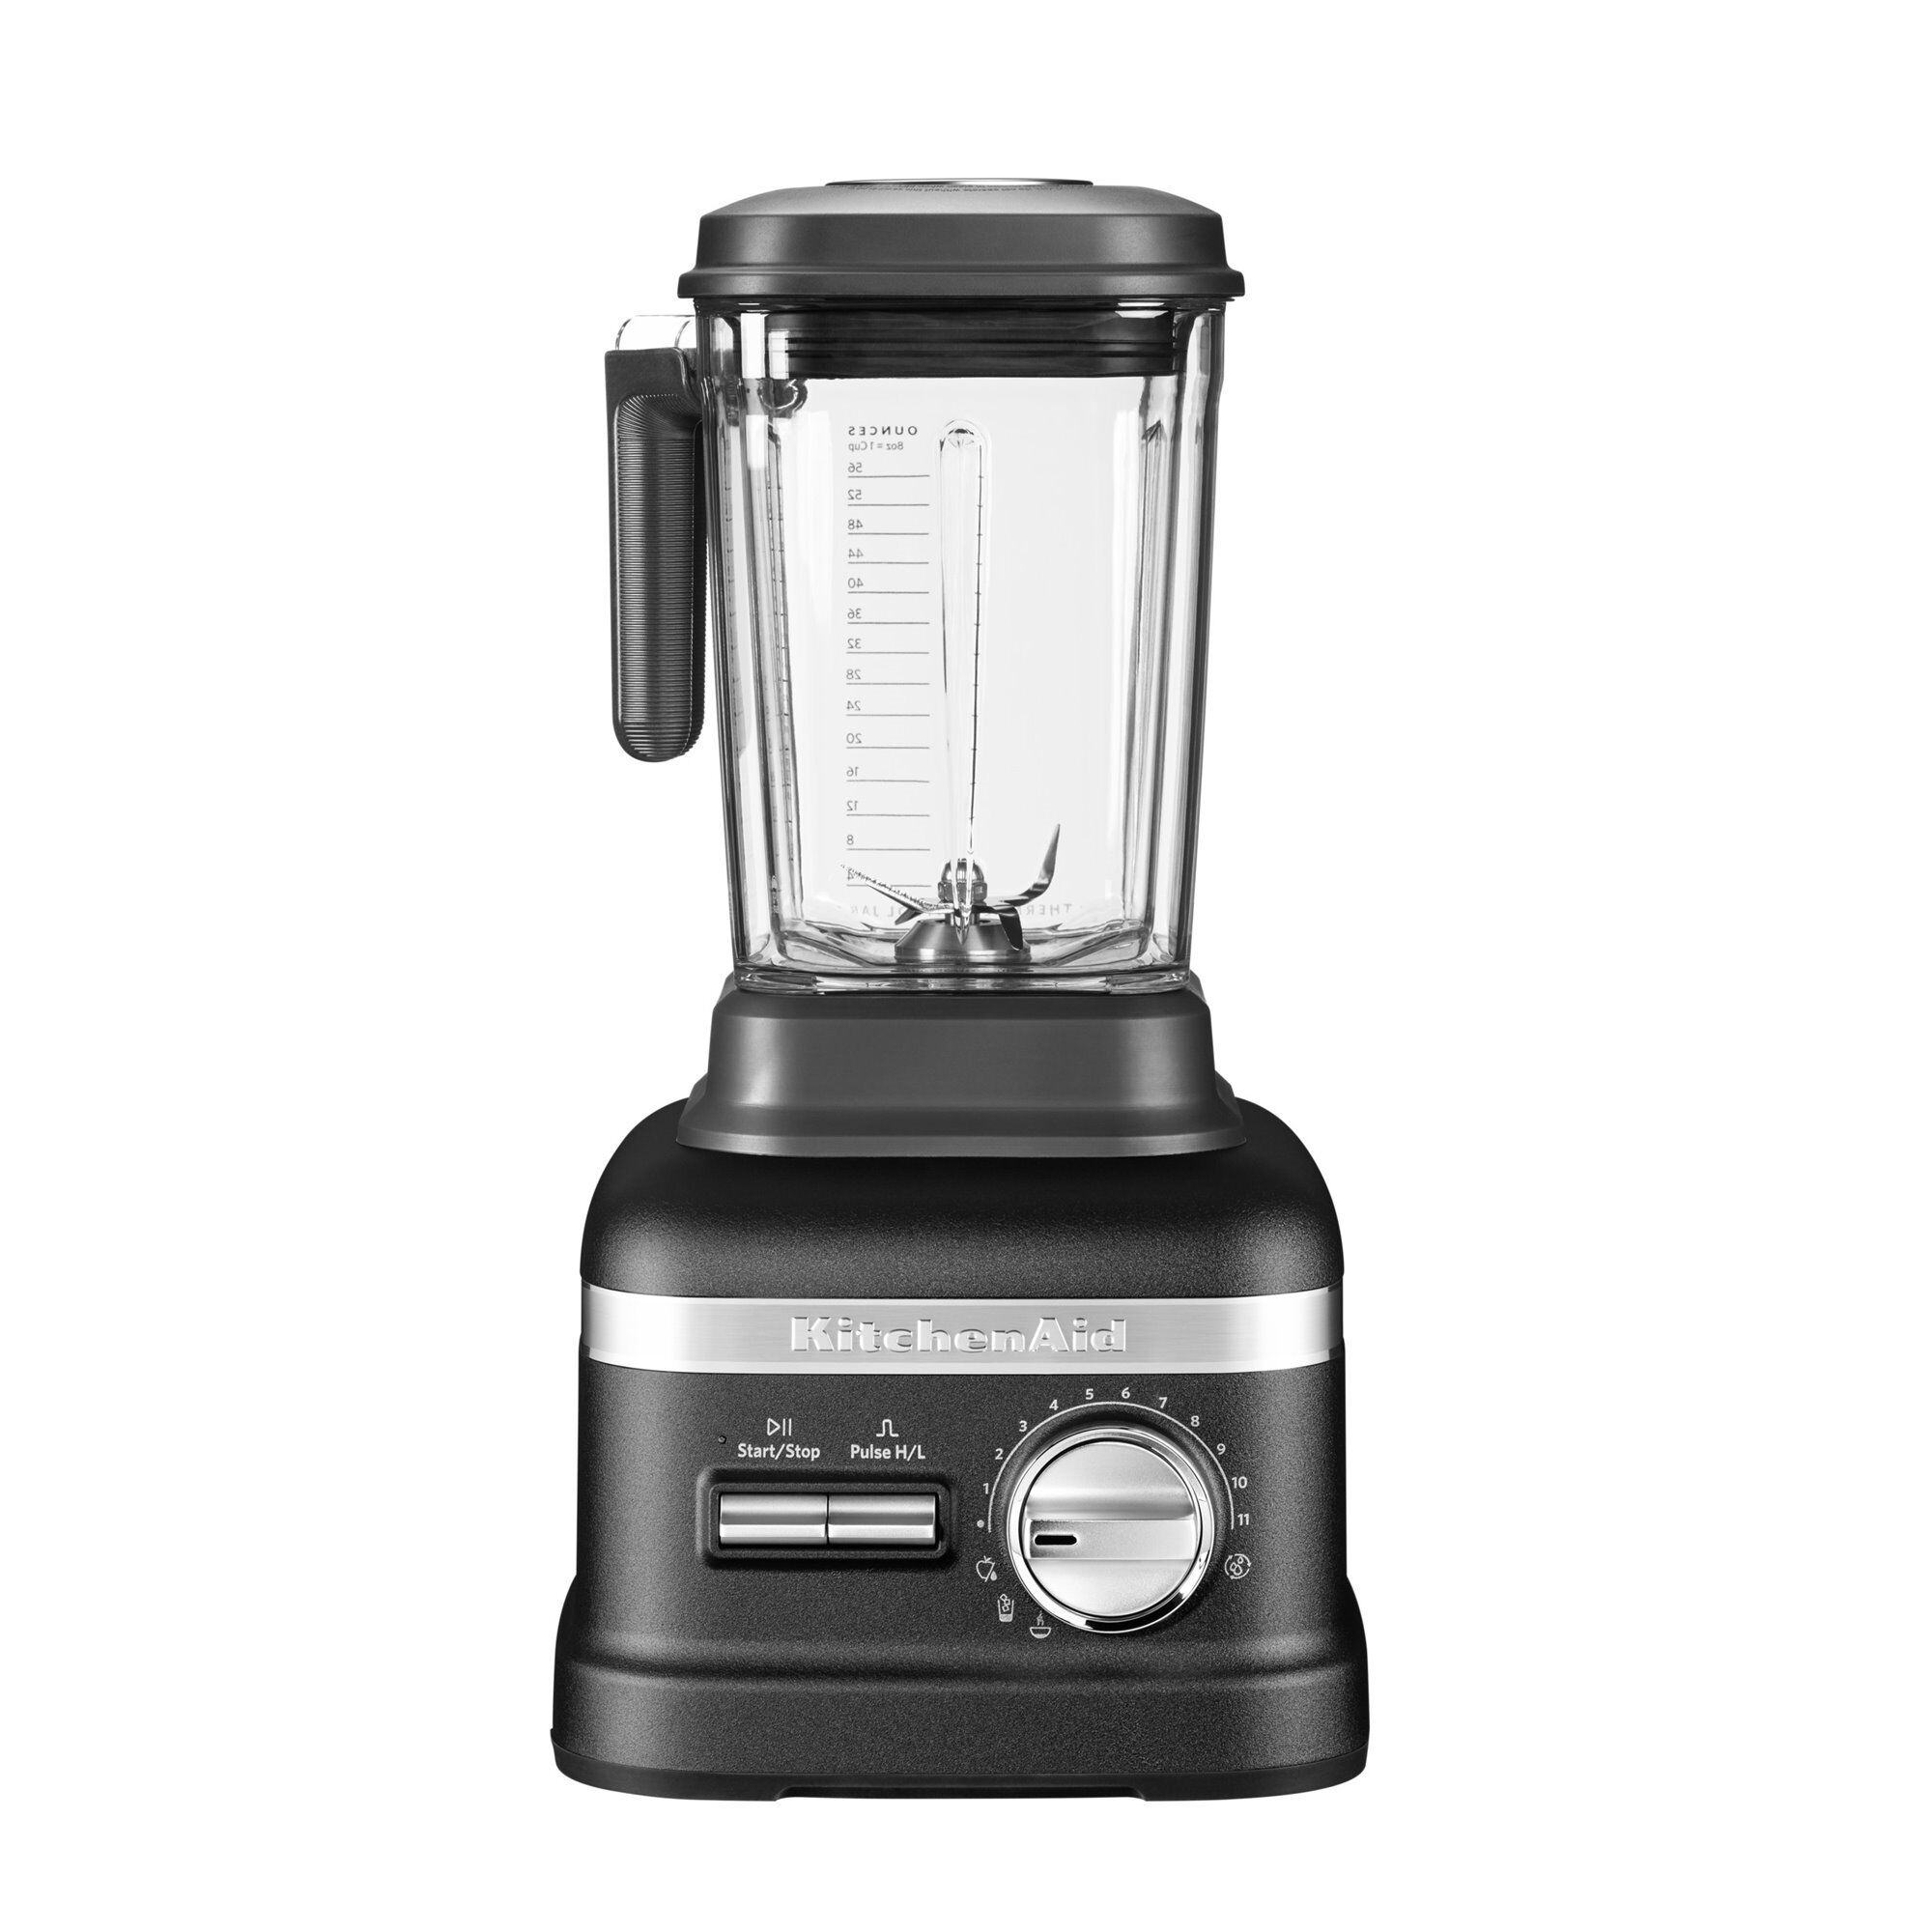 electrical house departments almond alm cream artisan magnetic and kitchen home blender drive juicers jarrold blenders aid kitchenaid